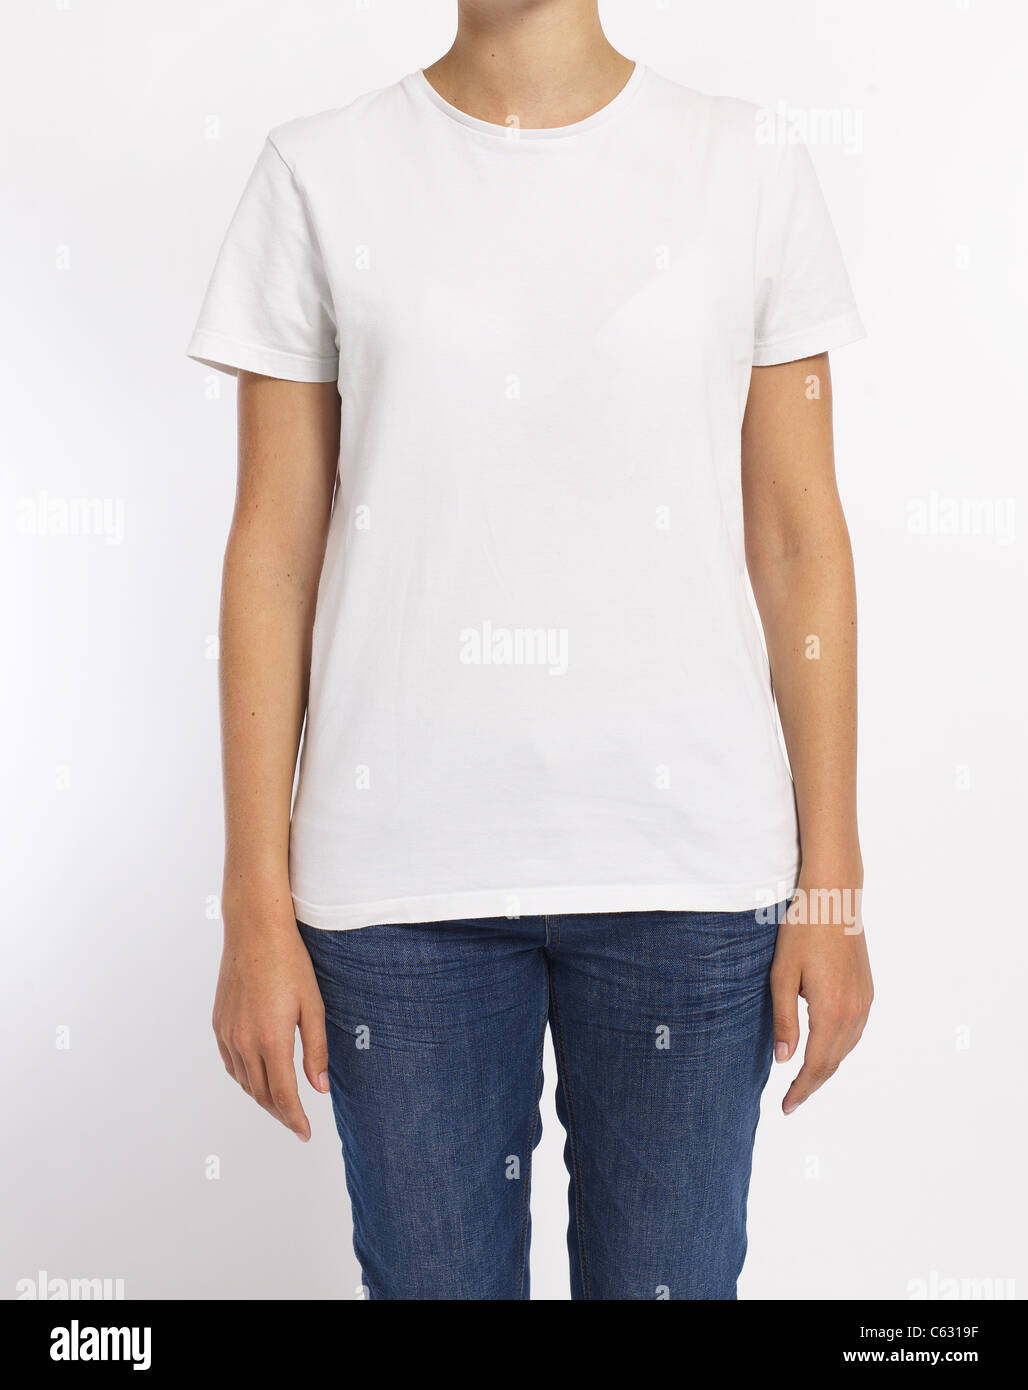 white tee shirt on a model waring jeans face cropped out - Stock Image